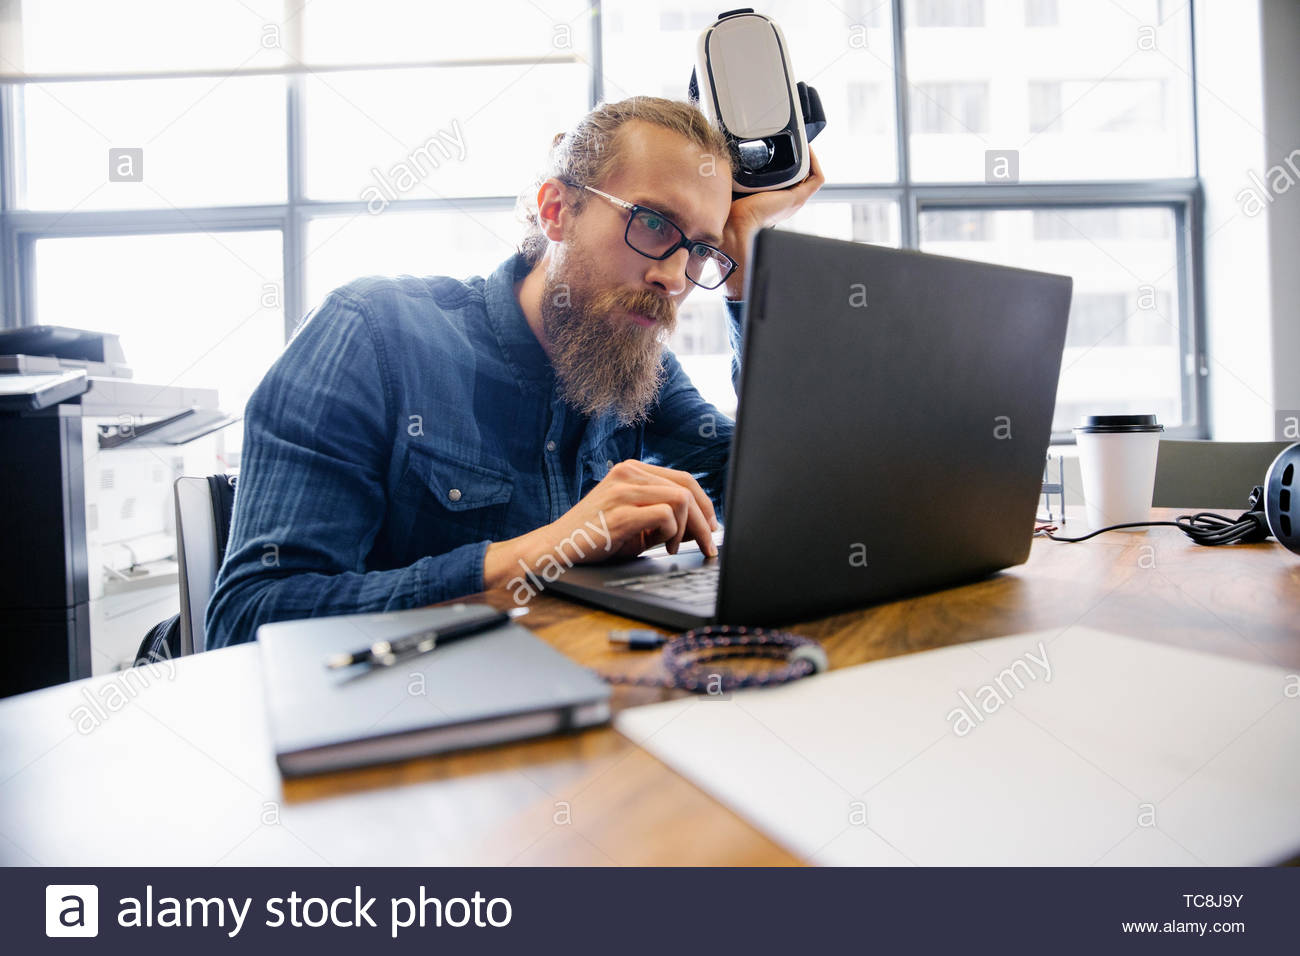 Focused computer programmer with virtual reality simulator glasses working at laptop in office - Stock Image